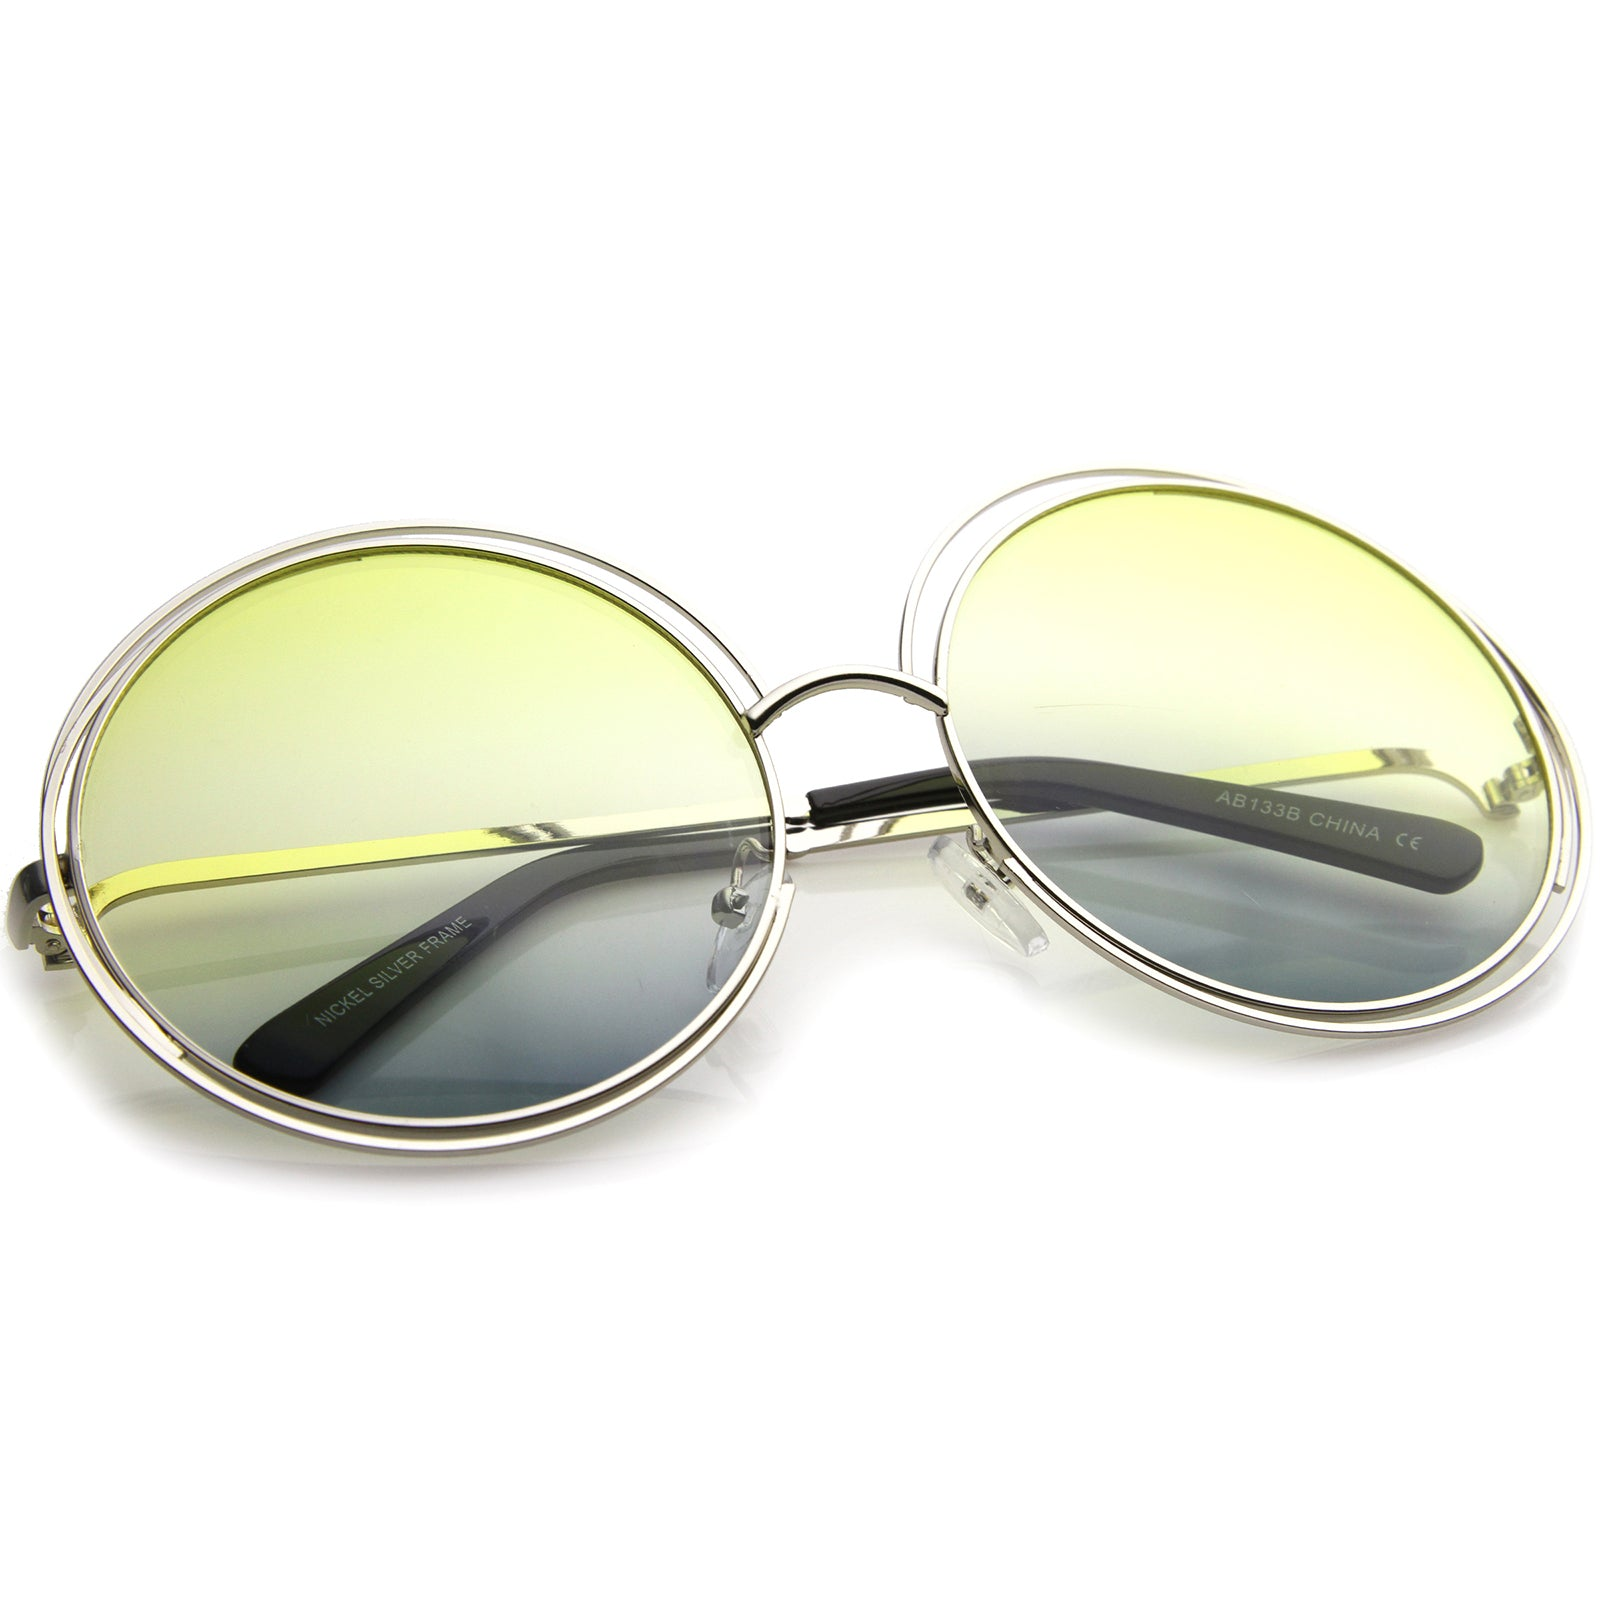 Oversize Wire Frame Gradient Two-Tone Color Lens Round Sunglasses 61mm - sunglass.la - 16